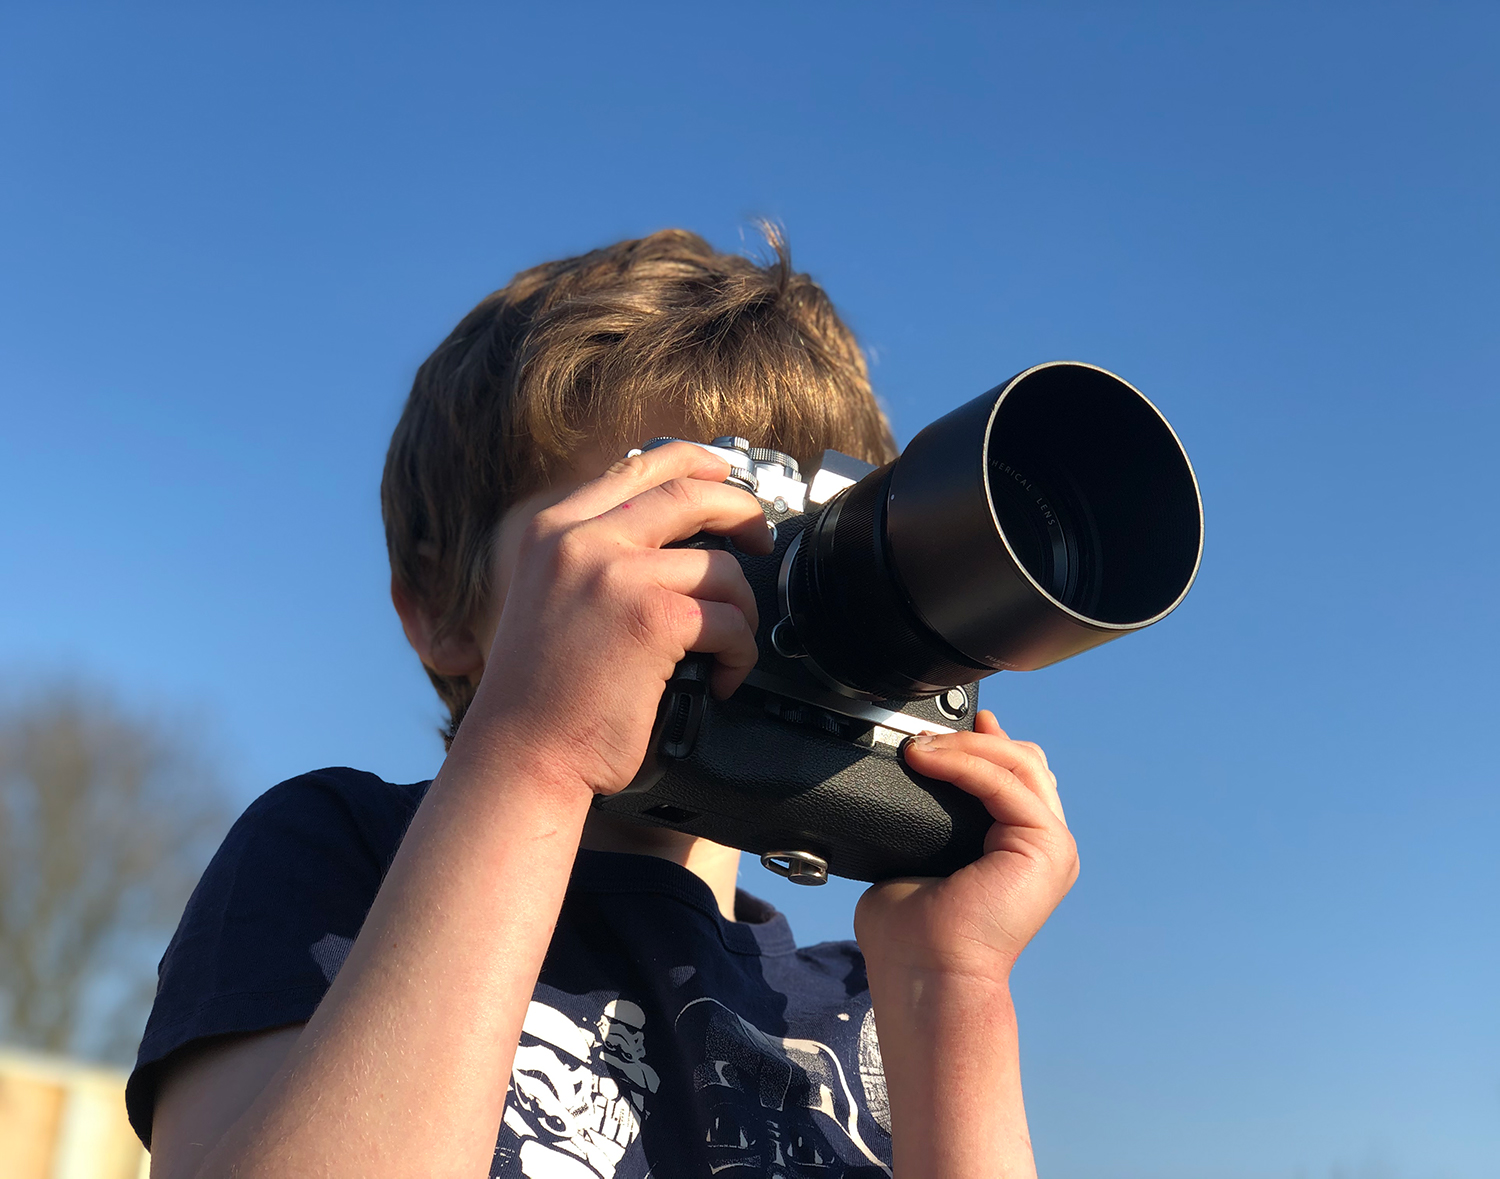 A small boy photographing with the camera up to his eye. Using photography to teach your children can cover a multitude of subjects.